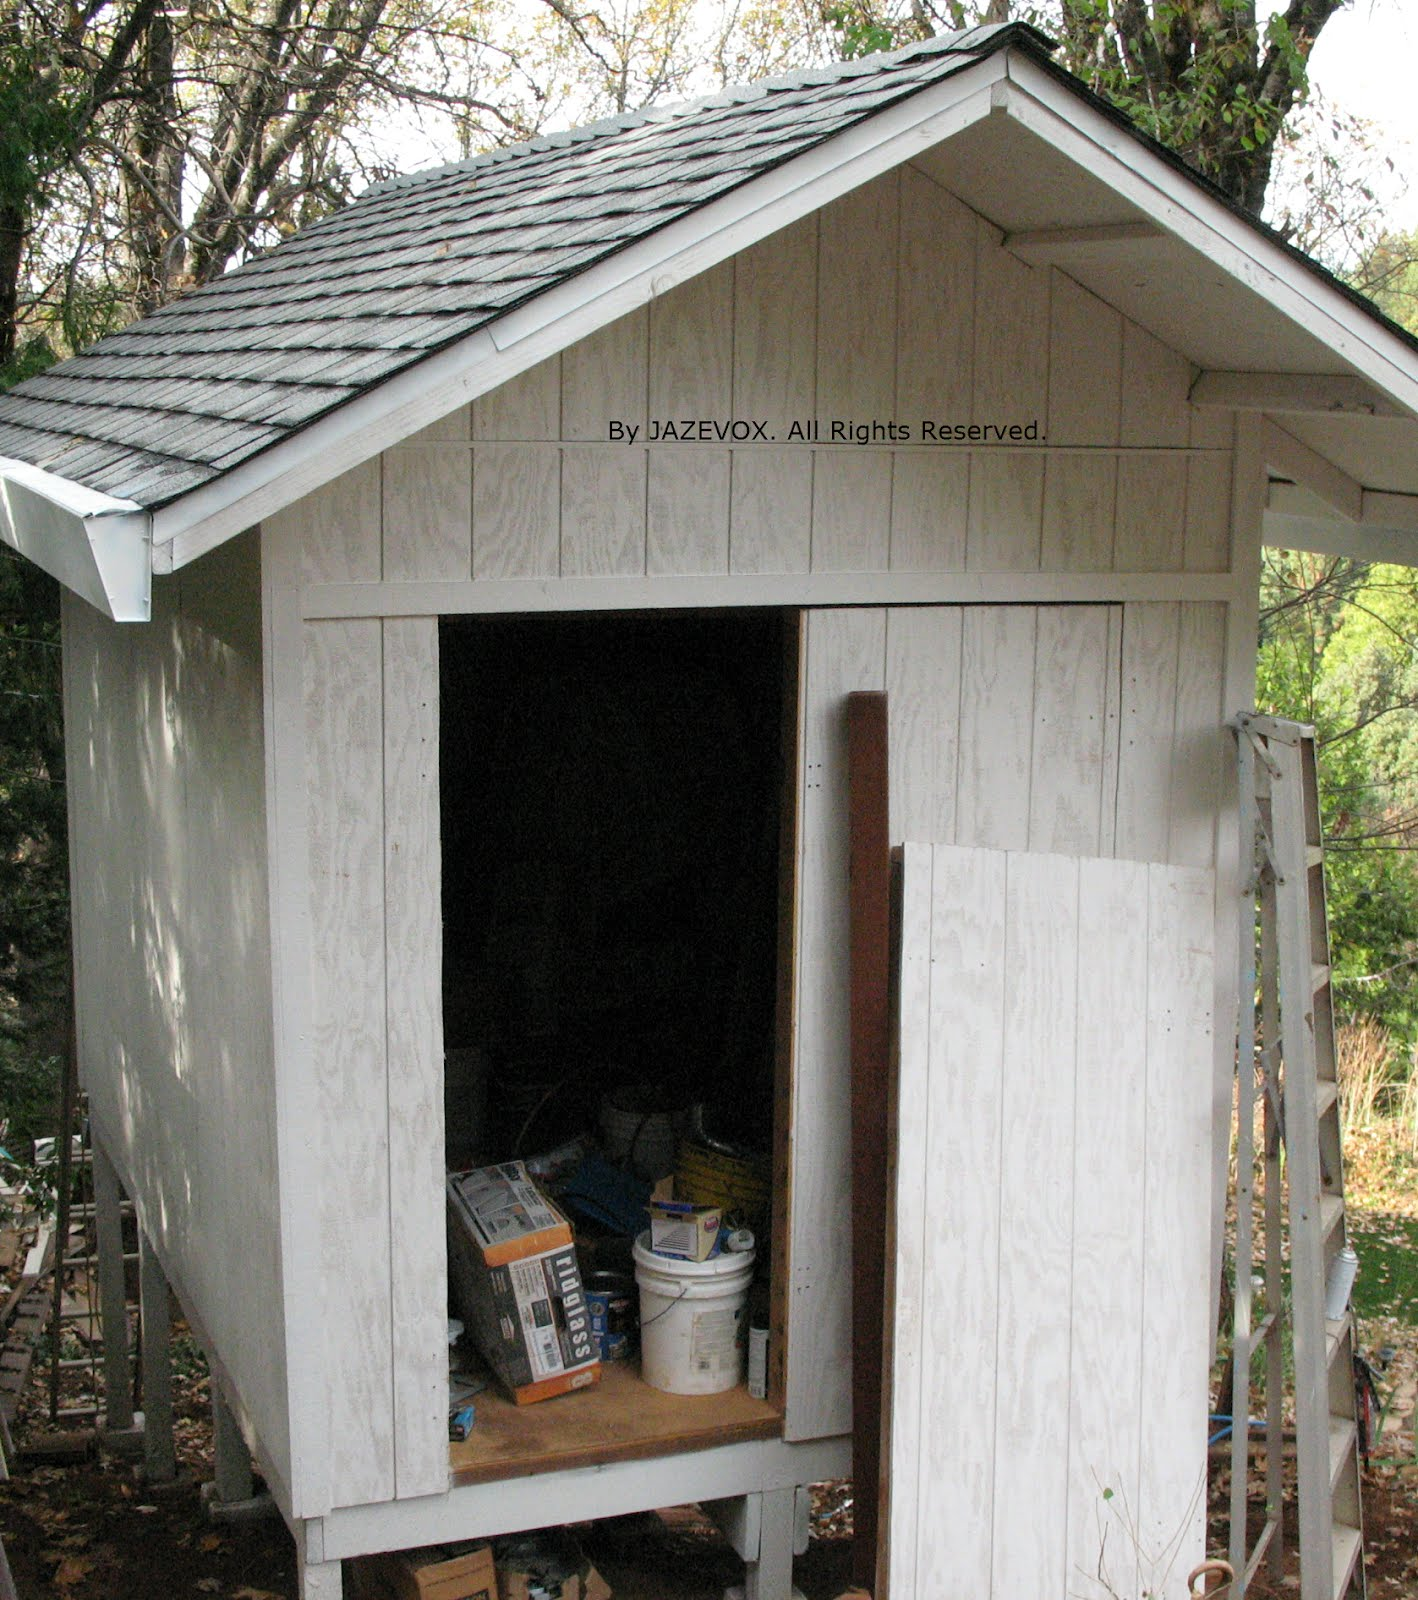 Do It Yourself Building Plans: Do It Yourself Backyard Shed Plans PDF DIY Shed Plans